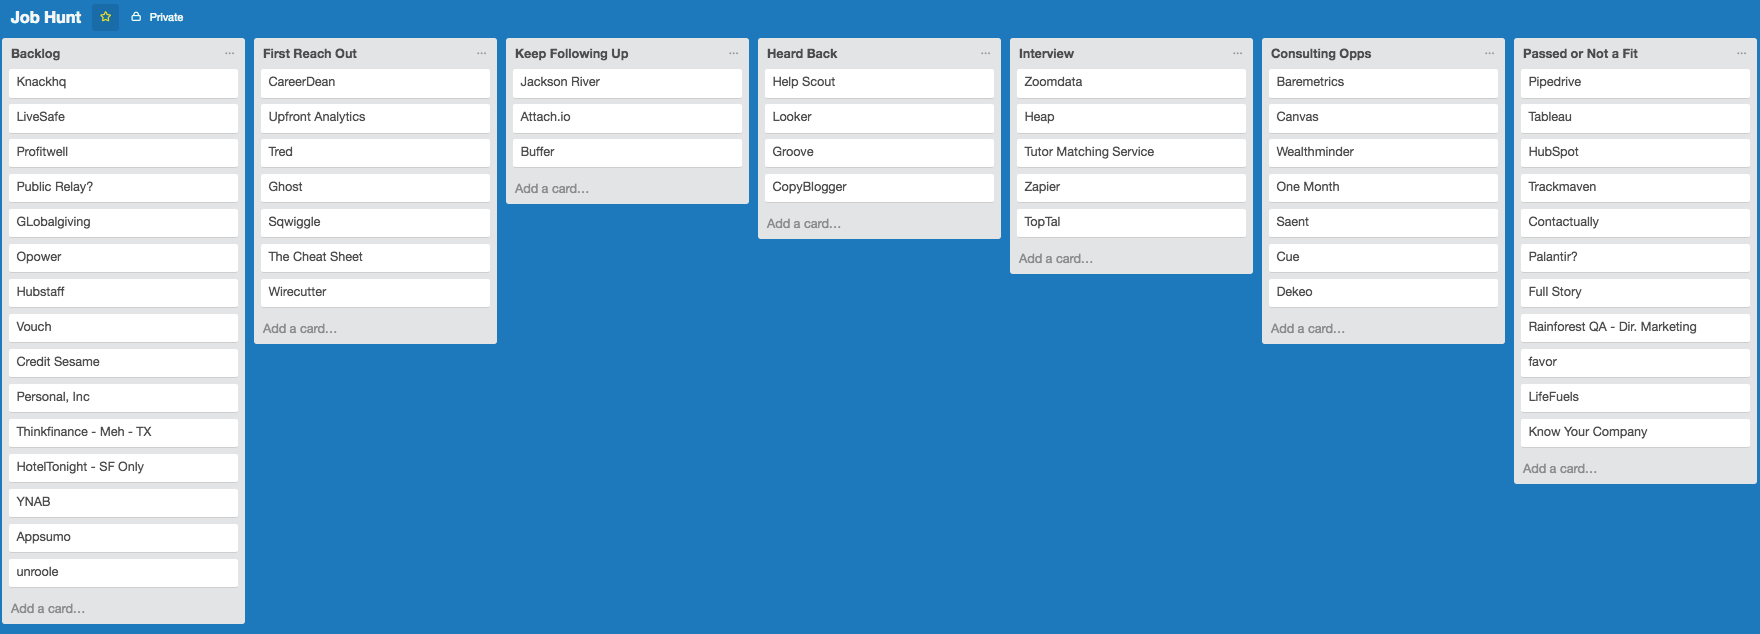 A screenshot of the Job Hunt Trello board. There are 7 Lists. From left to right, Backlog, First Reach Out, Keep Following Up, Heard Back, Interview, Consulting Opps, and Passed or Not a Fit. Each List has Cards in it with the names of companies.